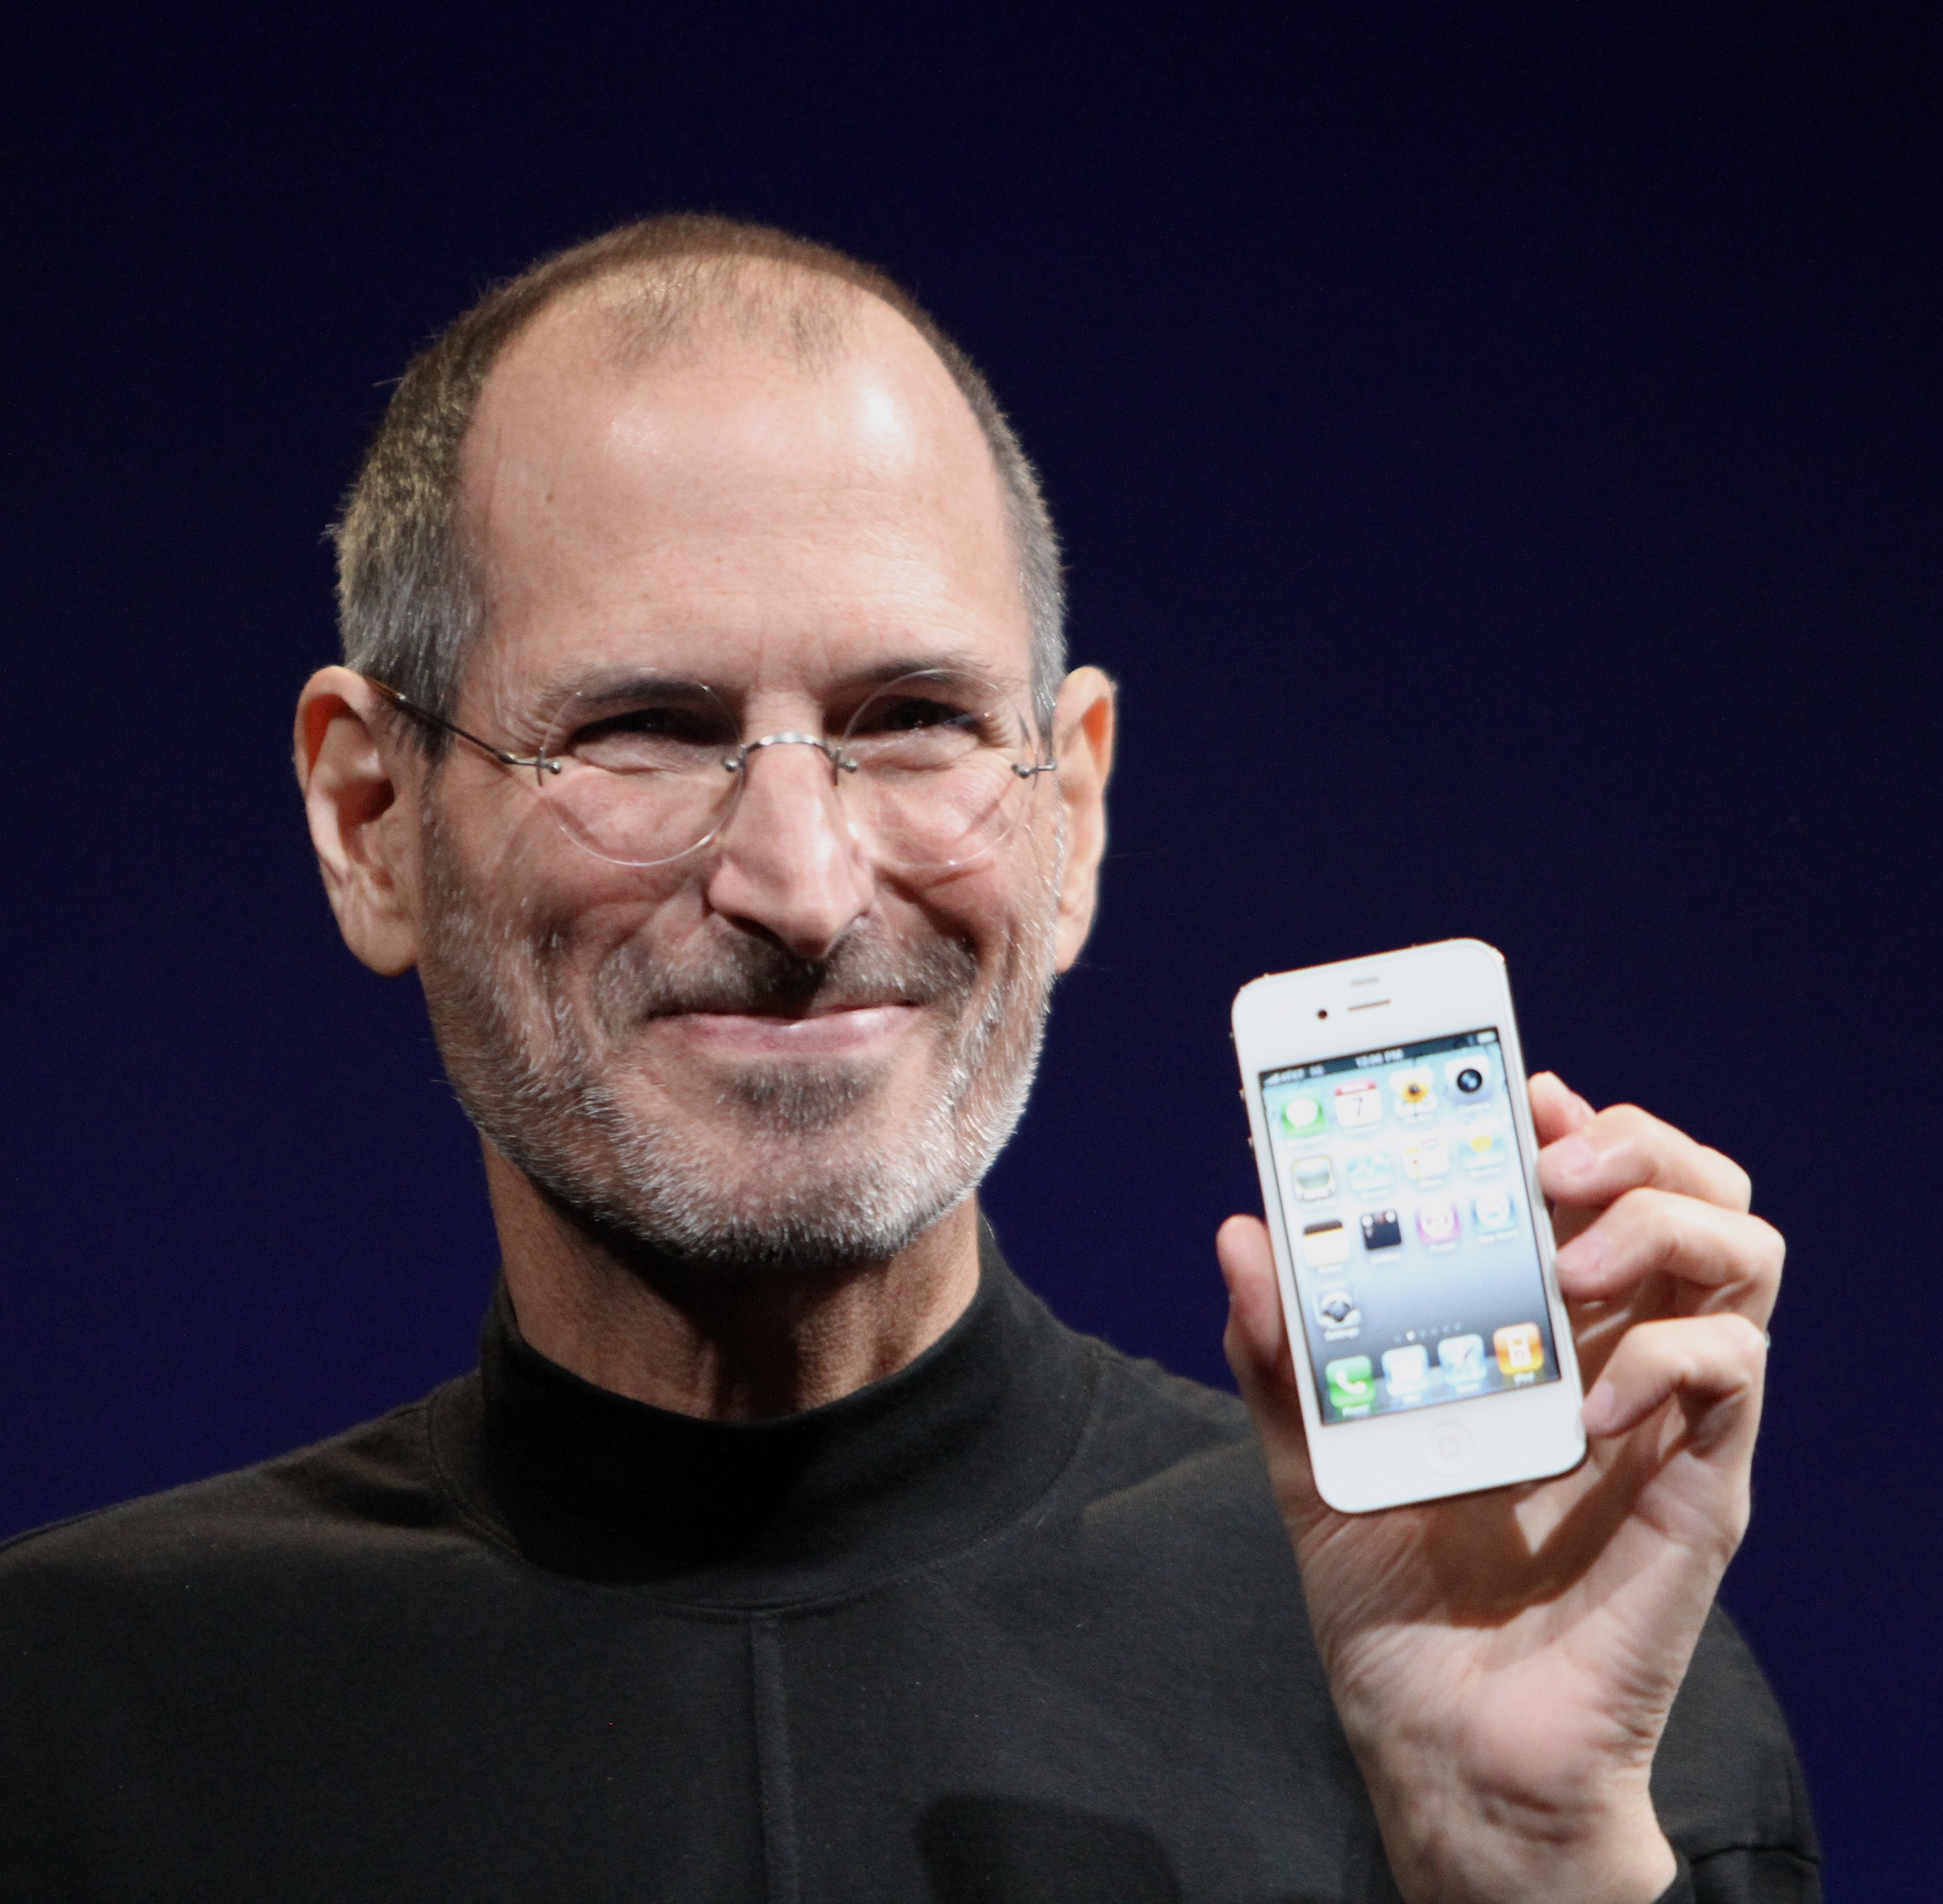 http://upload.wikimedia.org/wikipedia/commons/b/b9/Steve_Jobs_Headshot_2010-CROP.jpg